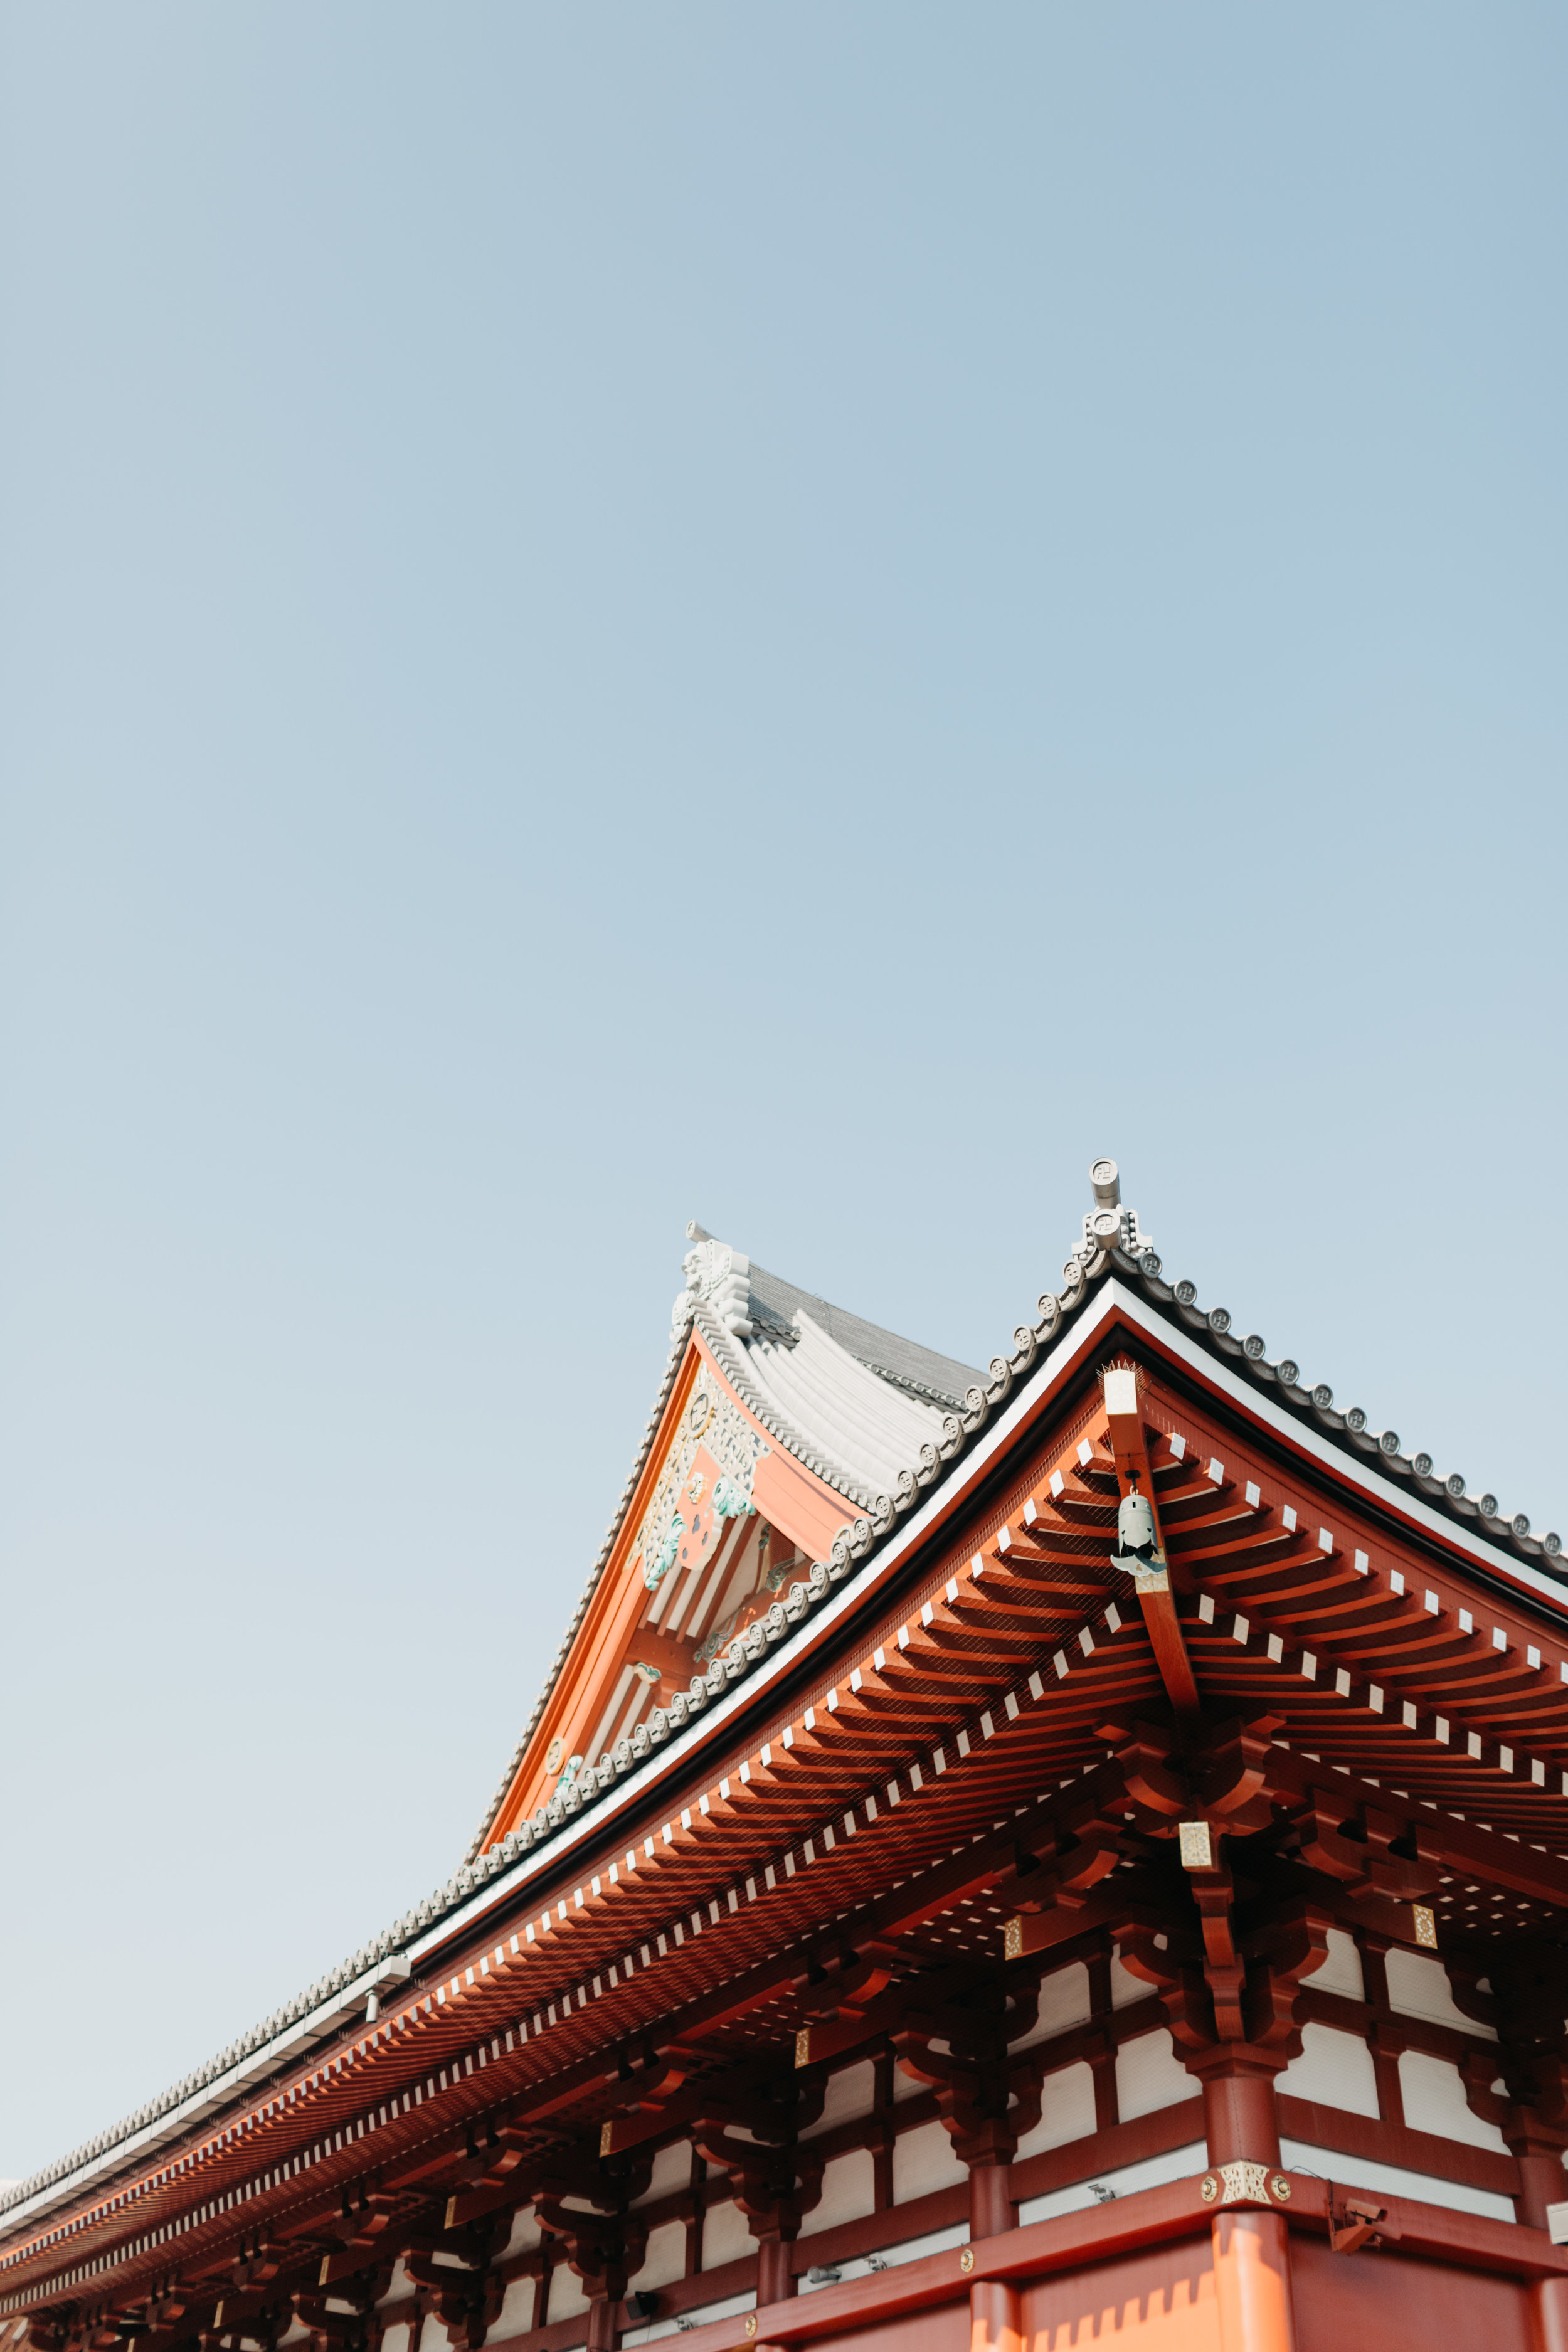 tokyo_sensoji_engagement_session_pictures_by_samantha_look-38.jpg